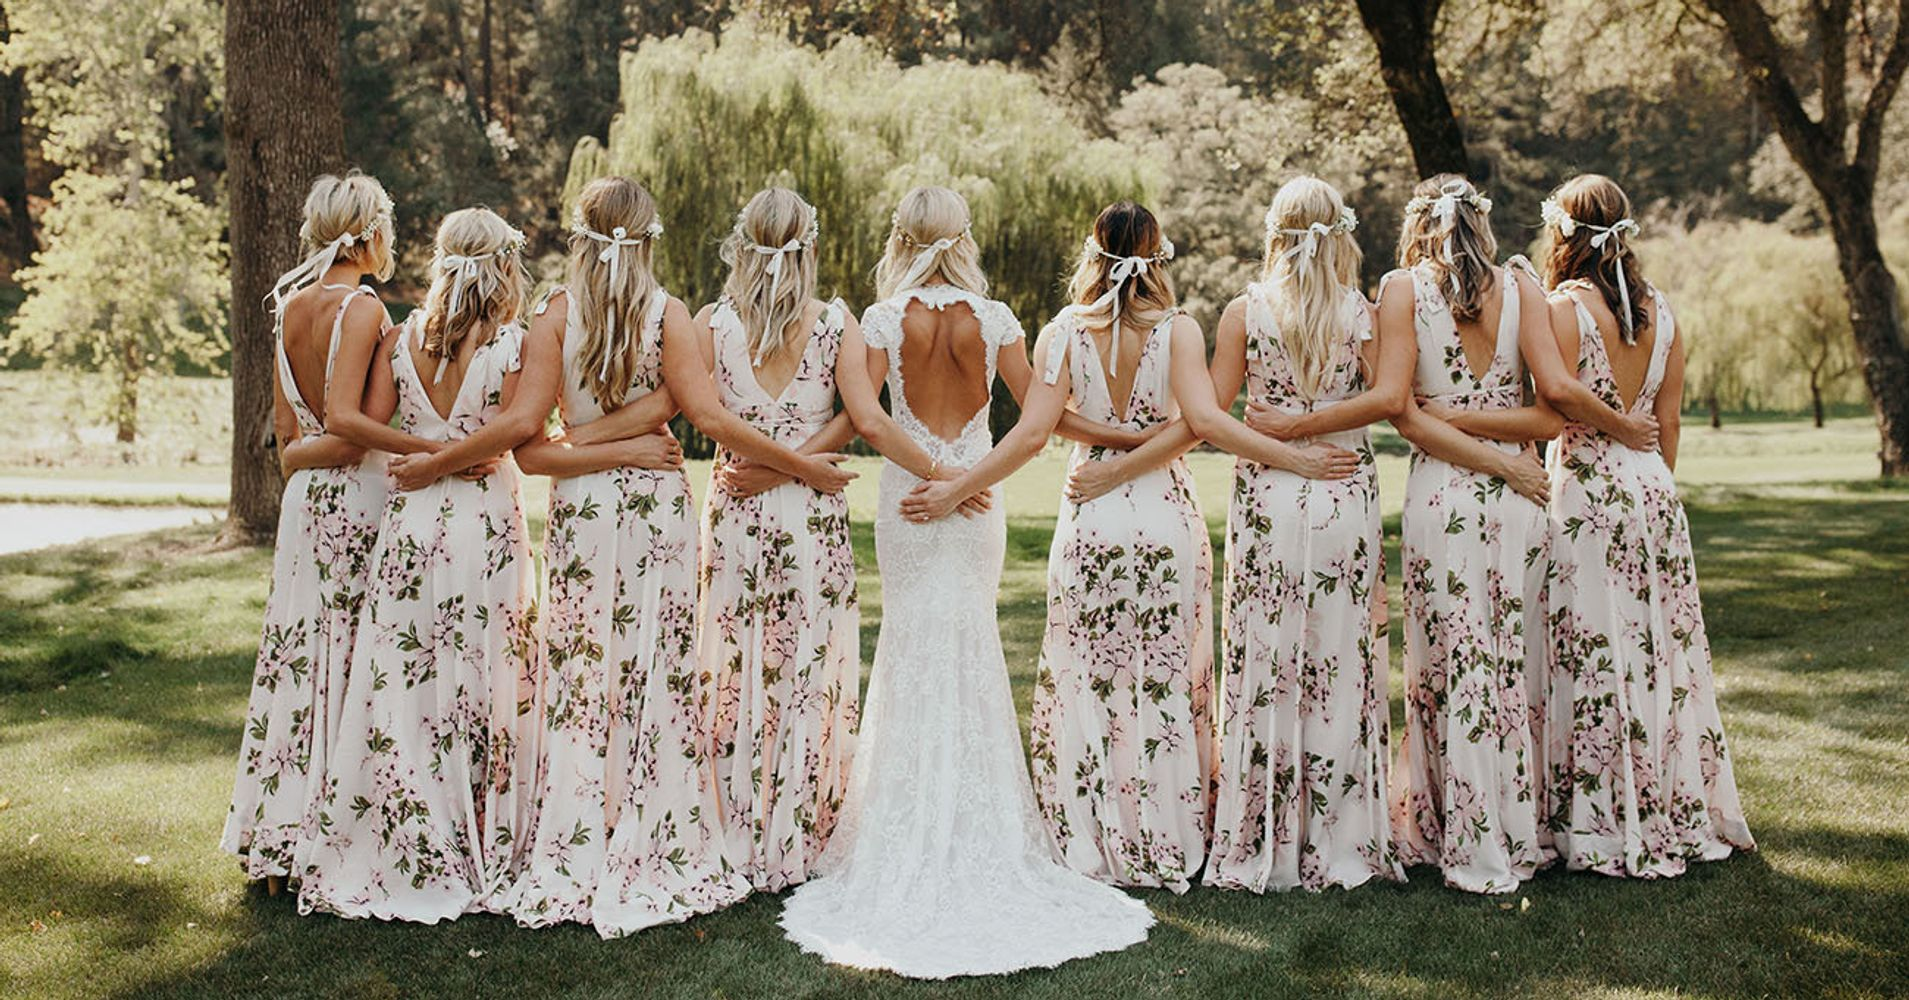 Fl Bridesmaid Dresses Are The Wedding Trend That Will Grow On You Huffpost Life